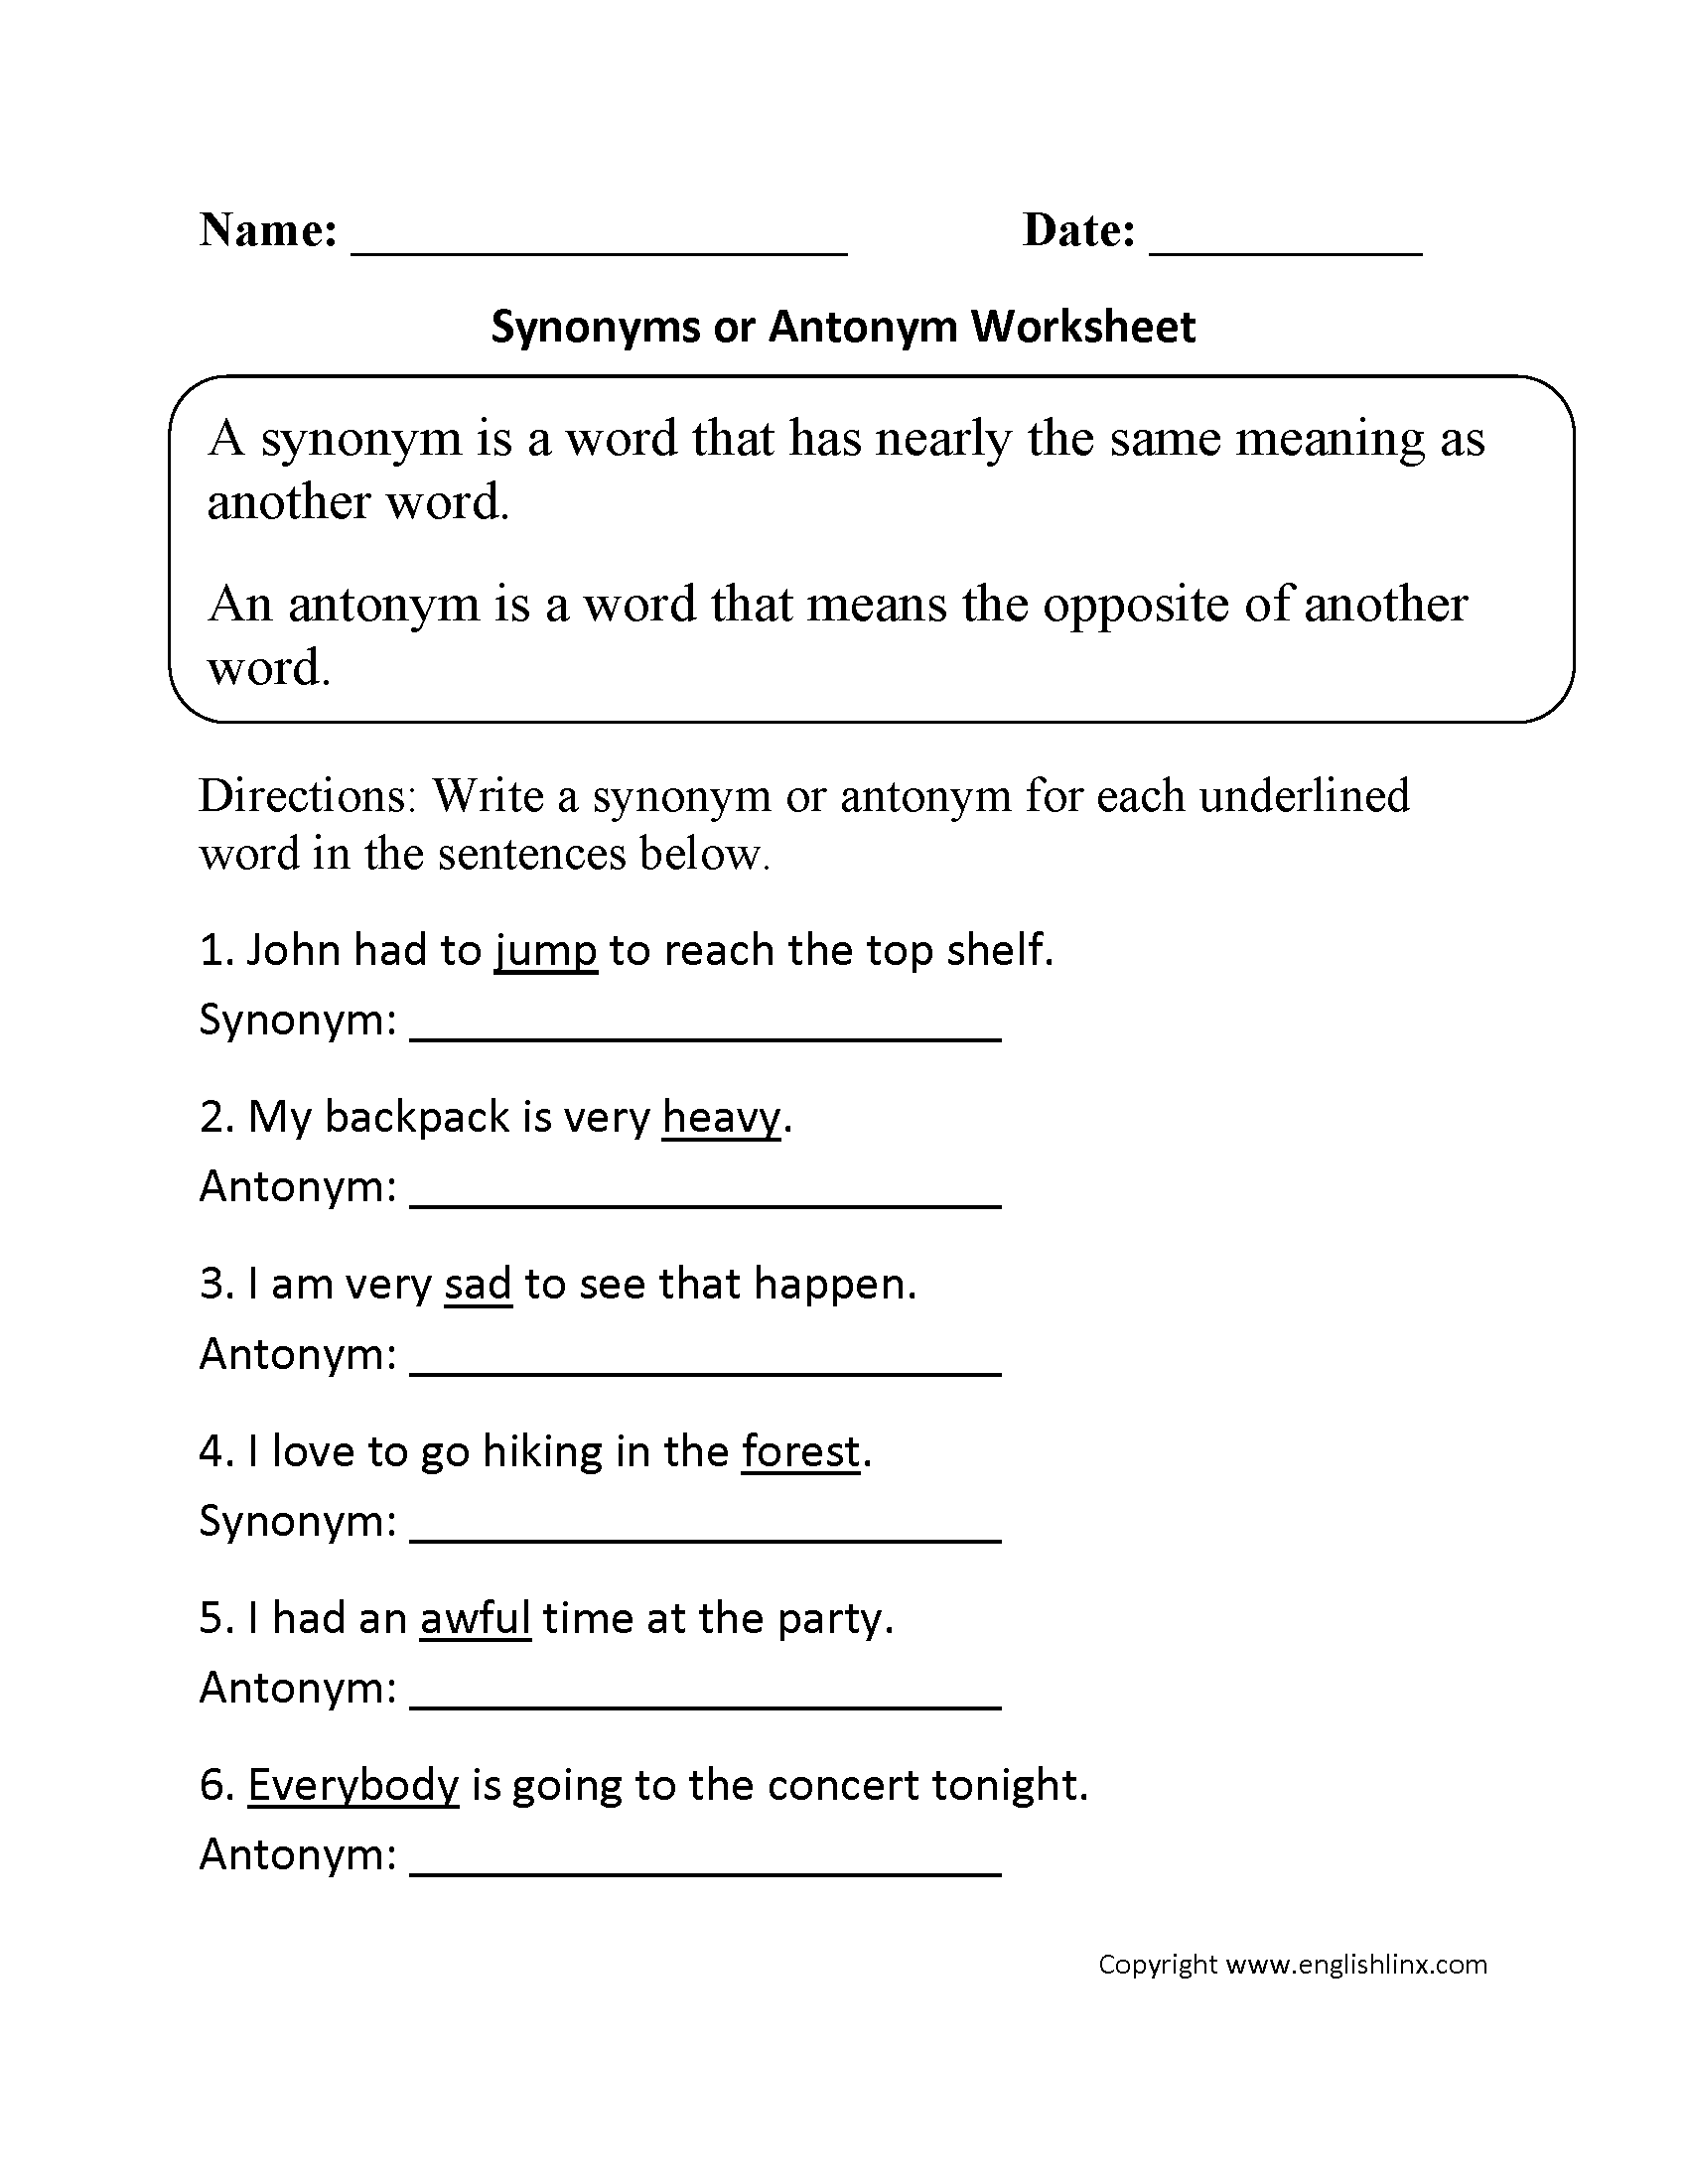 Worksheets Fourth Grade Vocabulary Worksheets vocabulary worksheets synonym and antonym worksheet